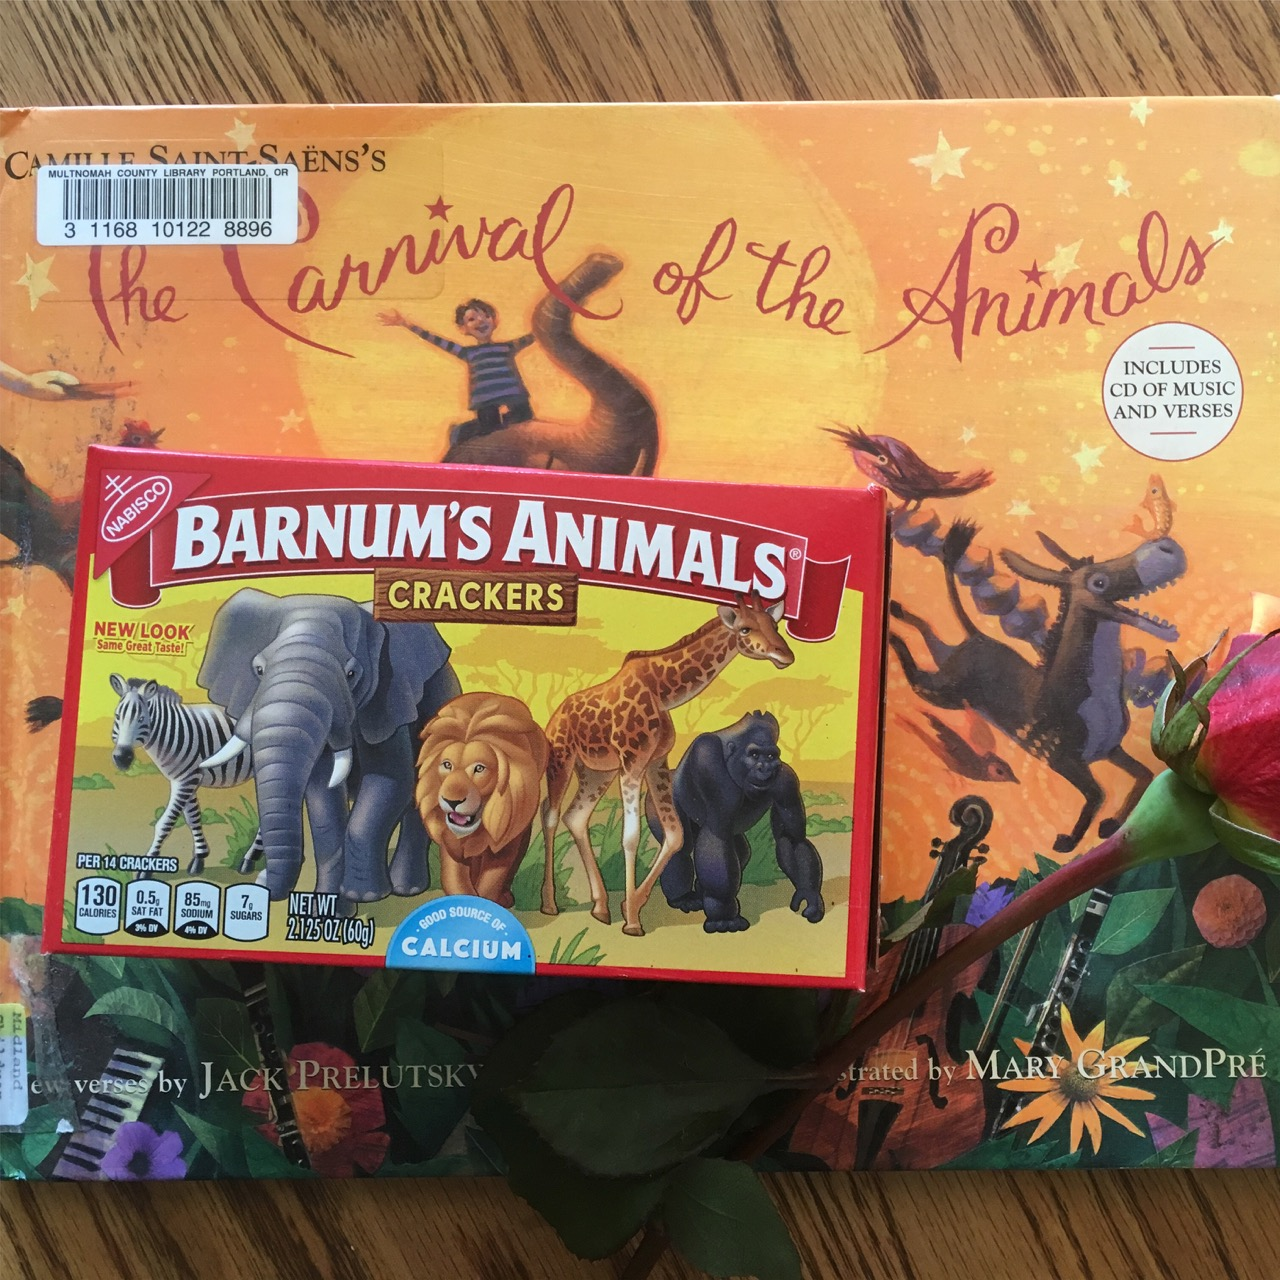 Jack Prelutsky's fabulous poem collection that goes alongside Carnival of the Animal, a famous work of music by Camille Saint-Saens's. Why not pair it with animal crackers?